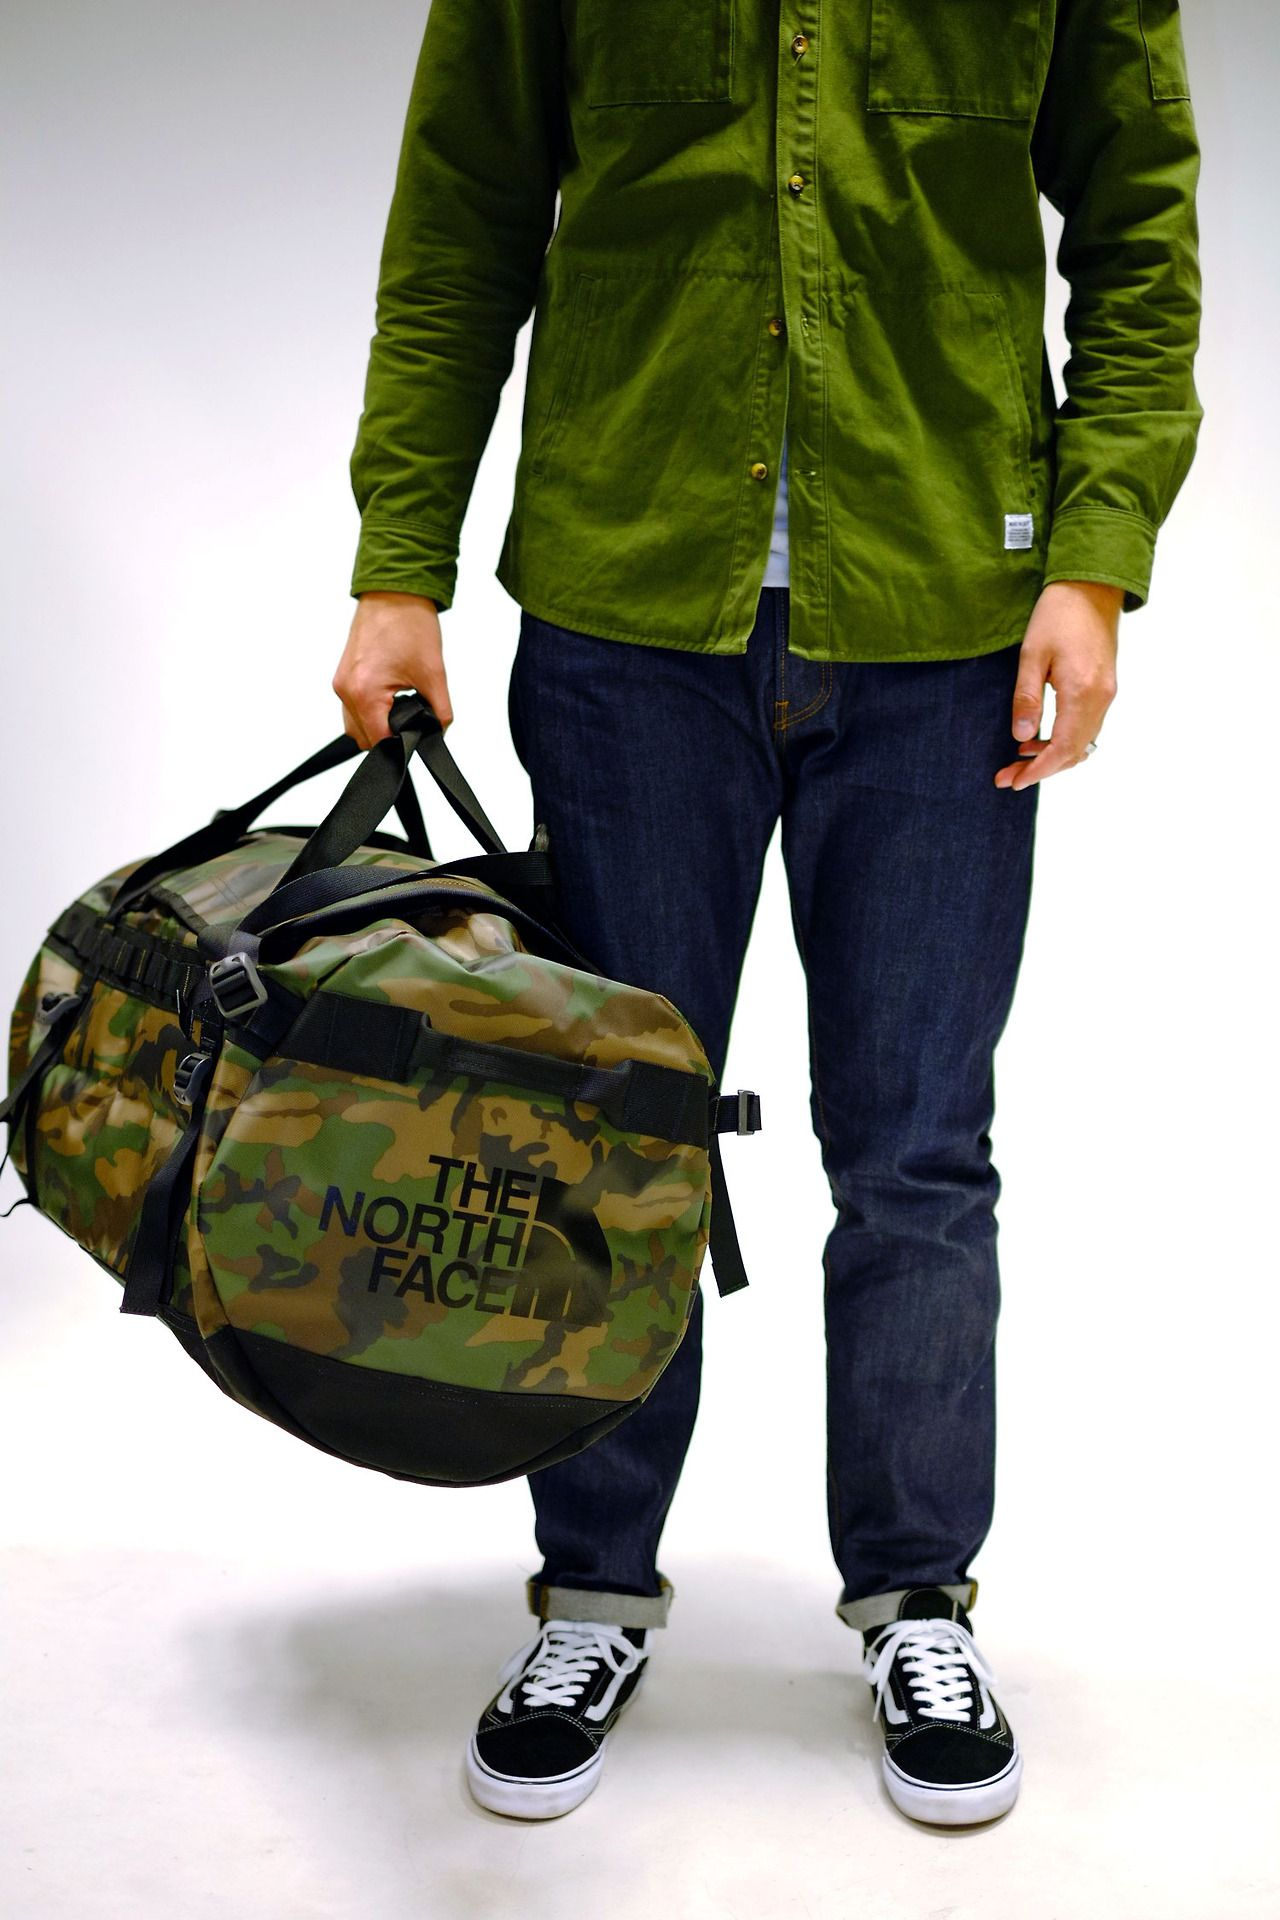 64edfc06e The North Face Camp Duffle - Camo at Urban Industry | Things I have ...